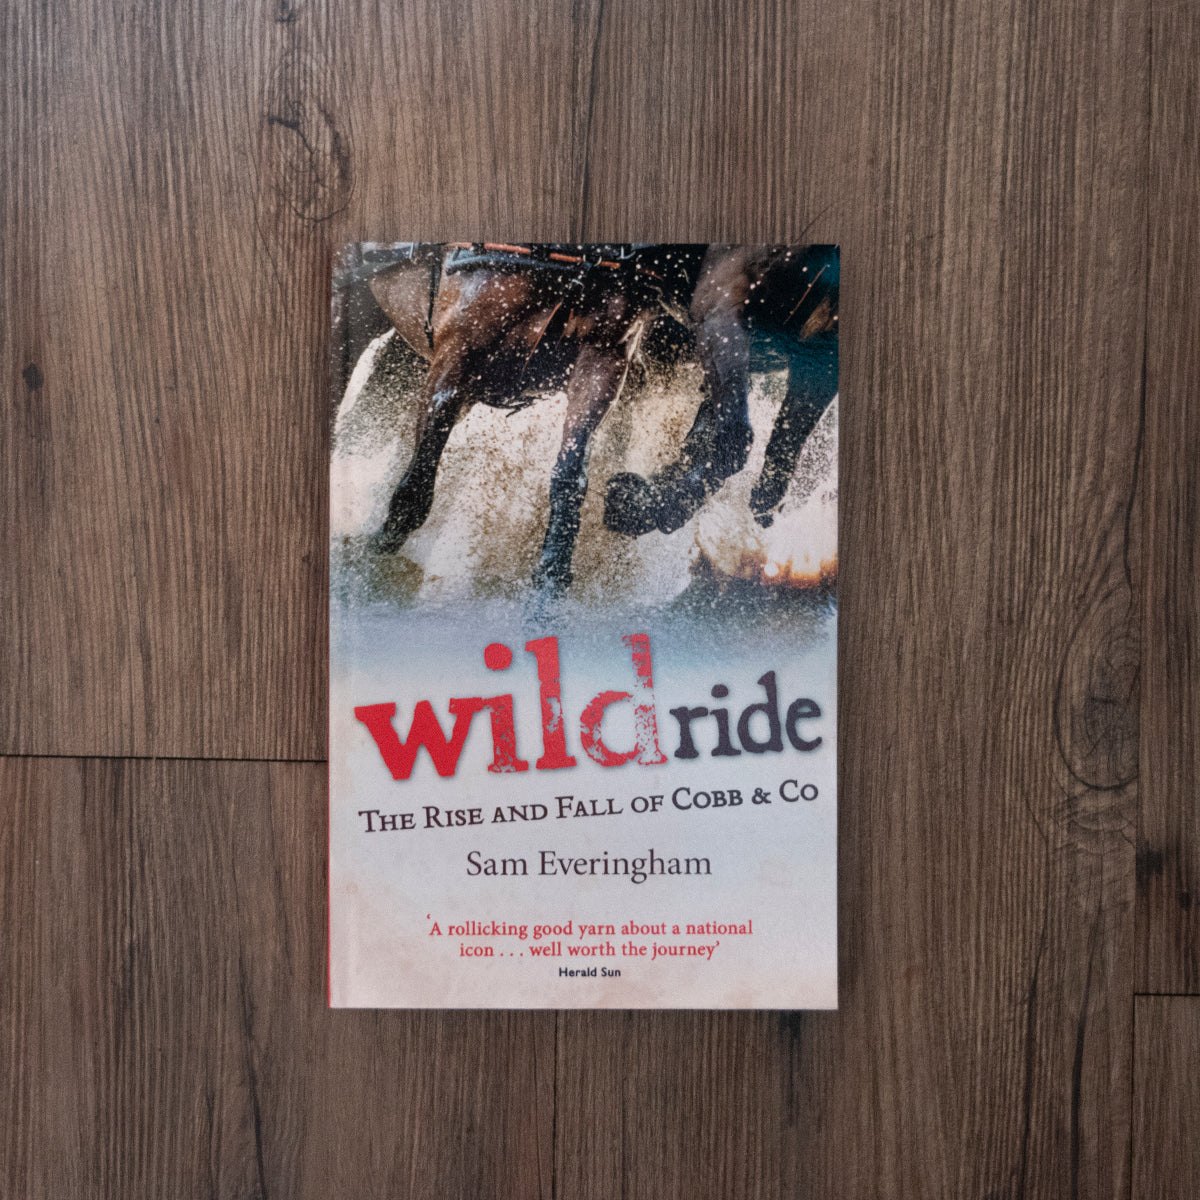 Wild Ride - The Rise and Fall of Cobb & Co. Book by Sam Everingham